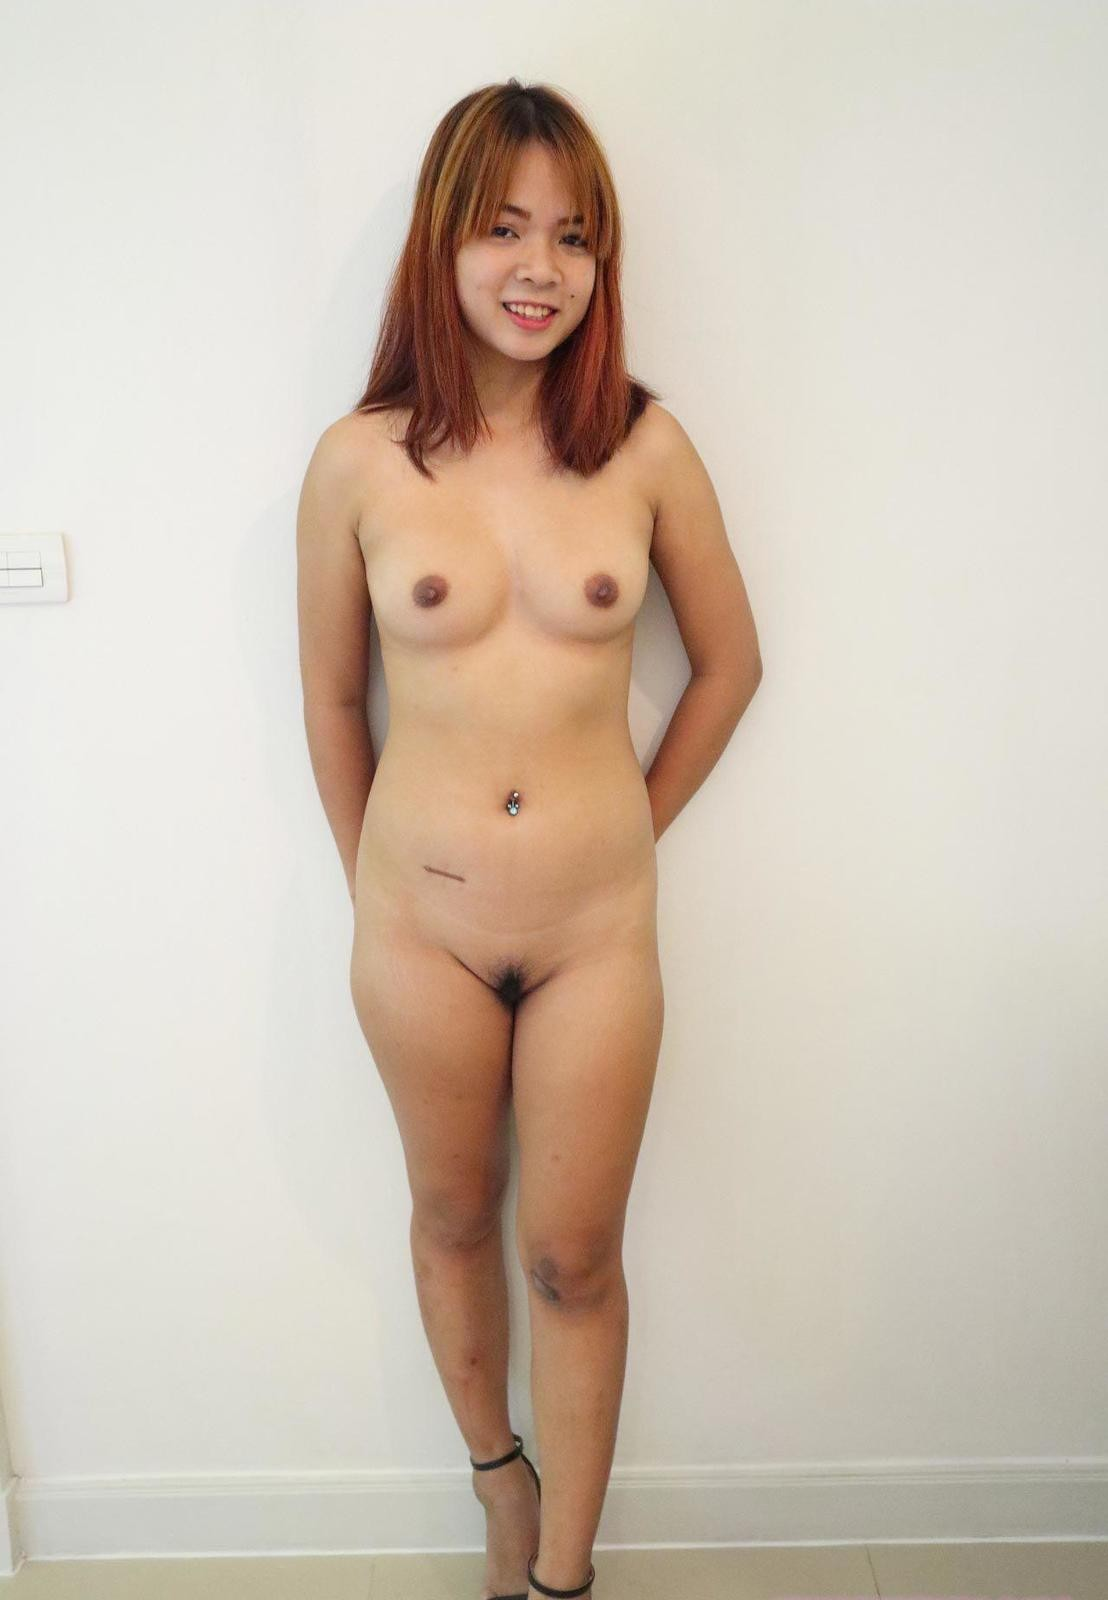 Photo in topic Asian Bimbo by ThaiTwister